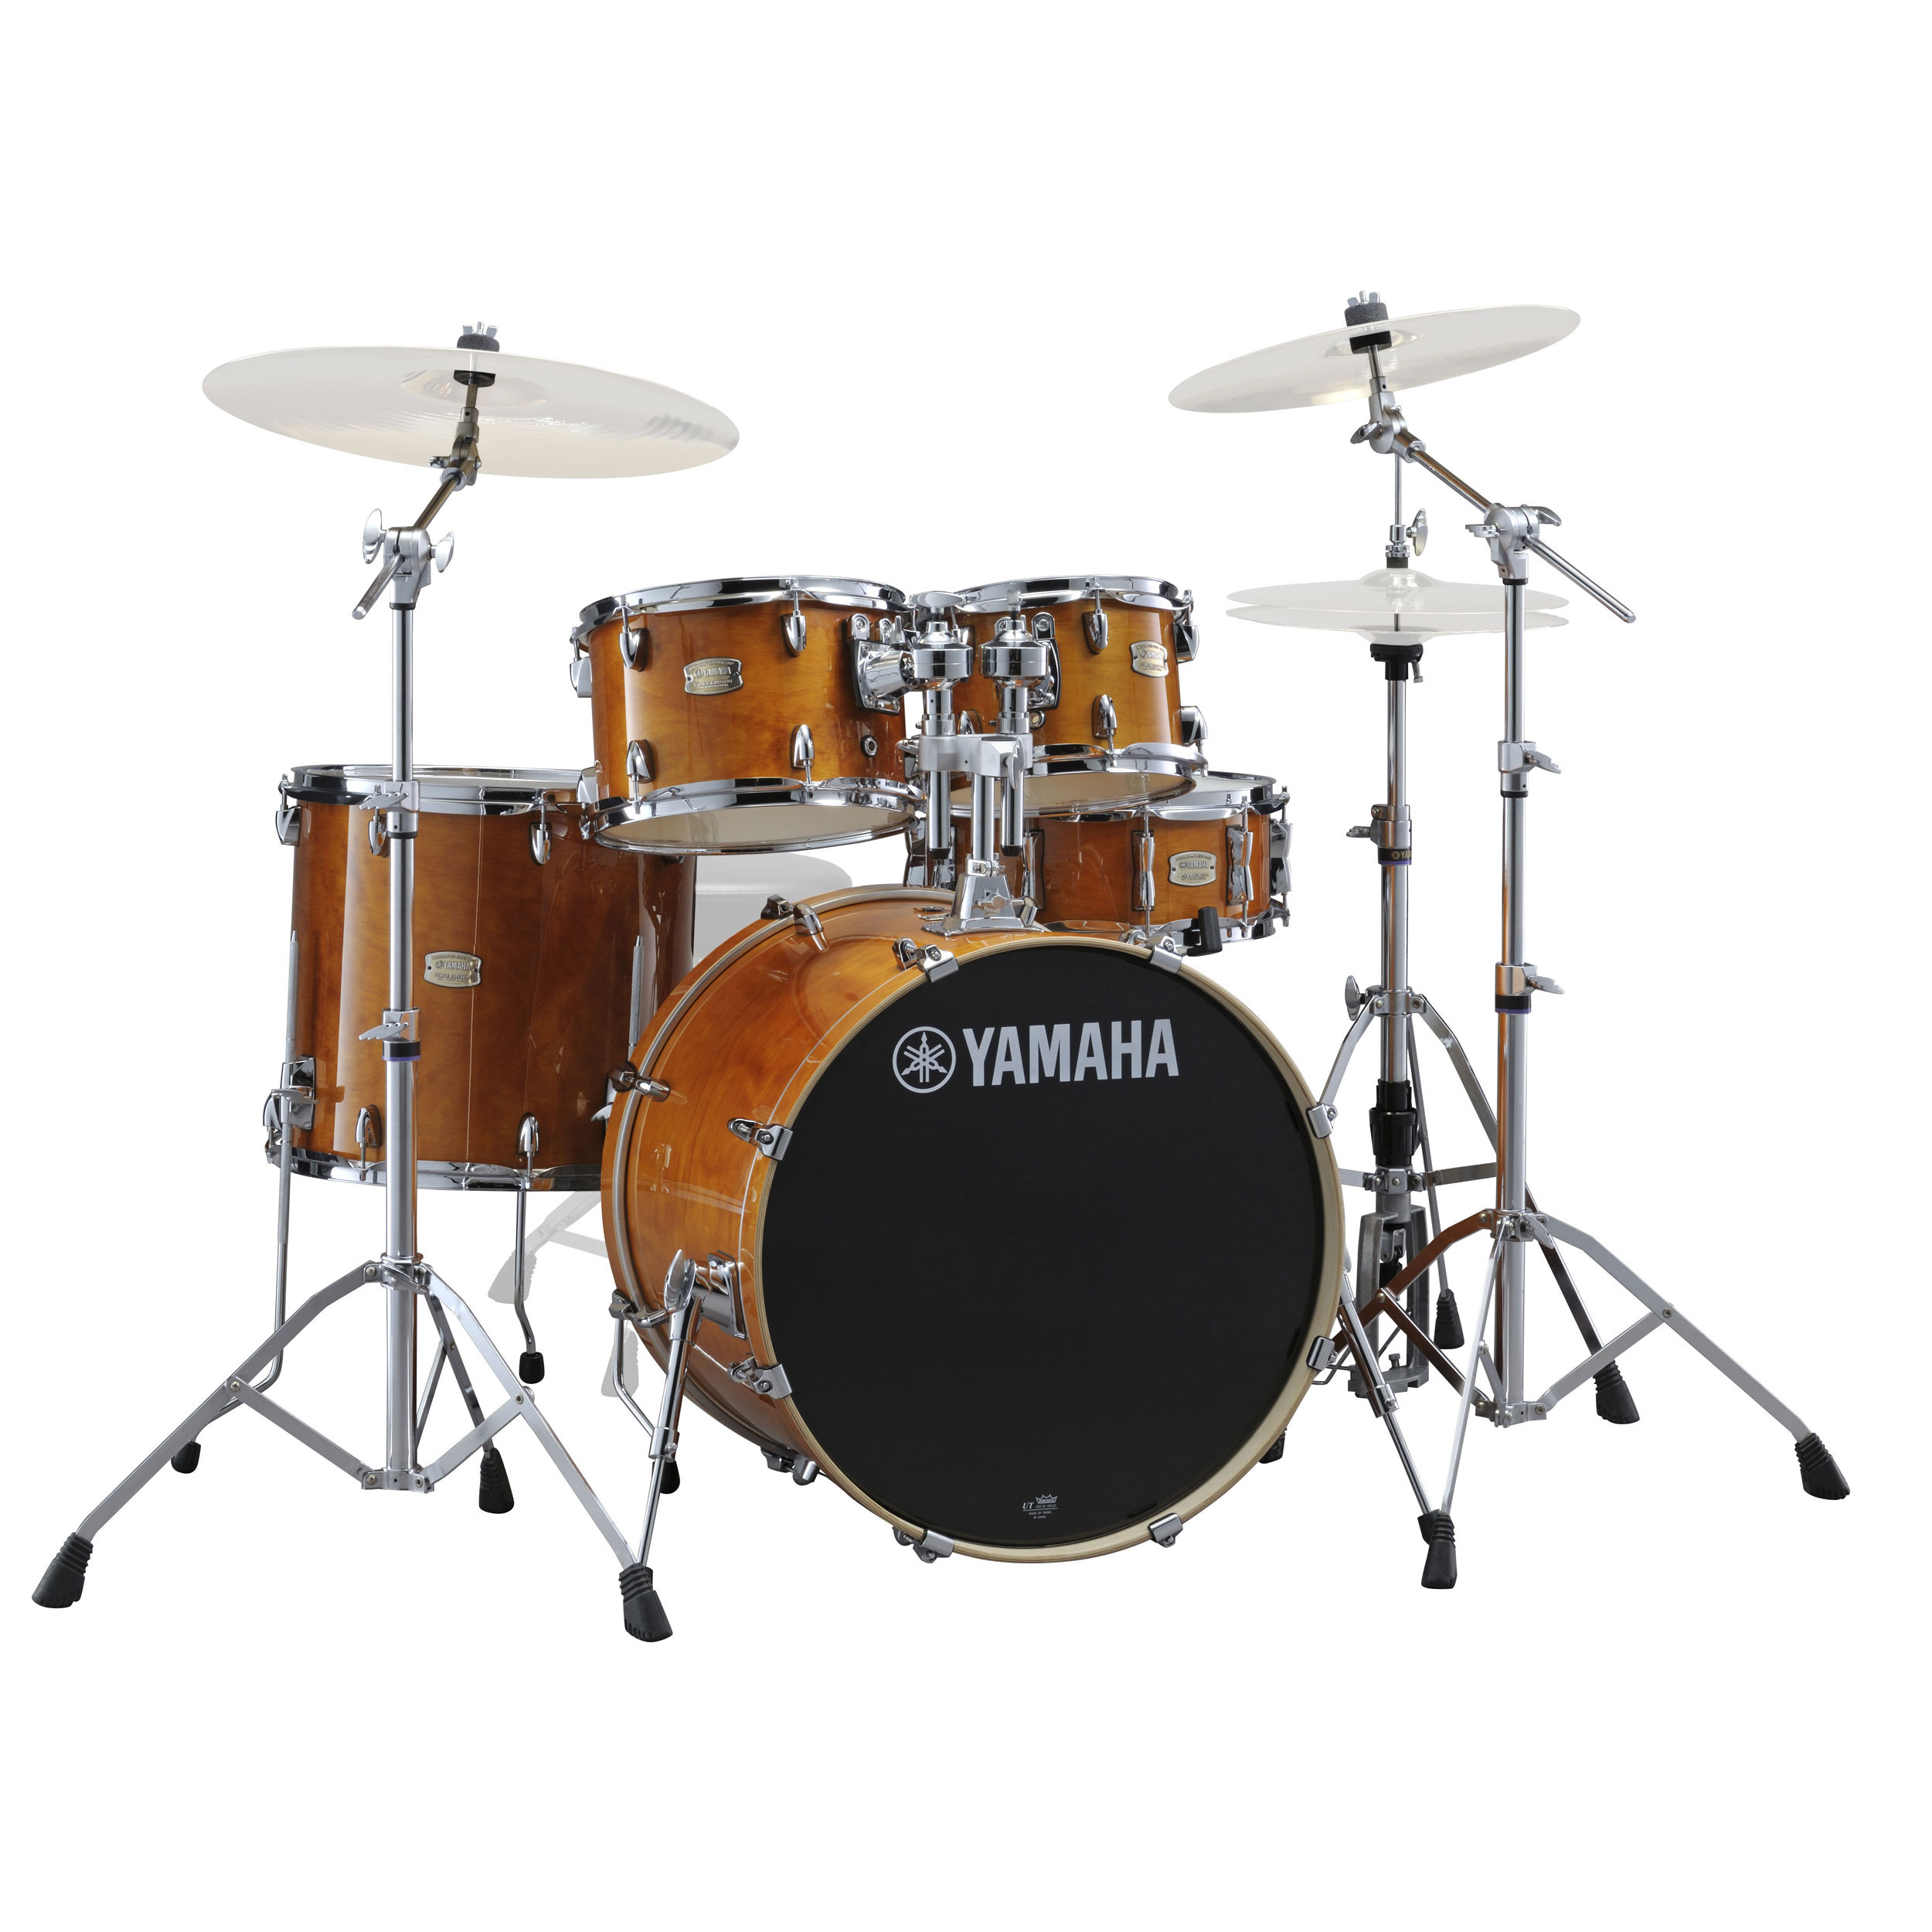 "Yamaha Stage Custom 5-Piece Rock Drum Set with HW-780 Hardware Pack (20"" Bass, 10/12/14"" Toms, 14"" Snare)"